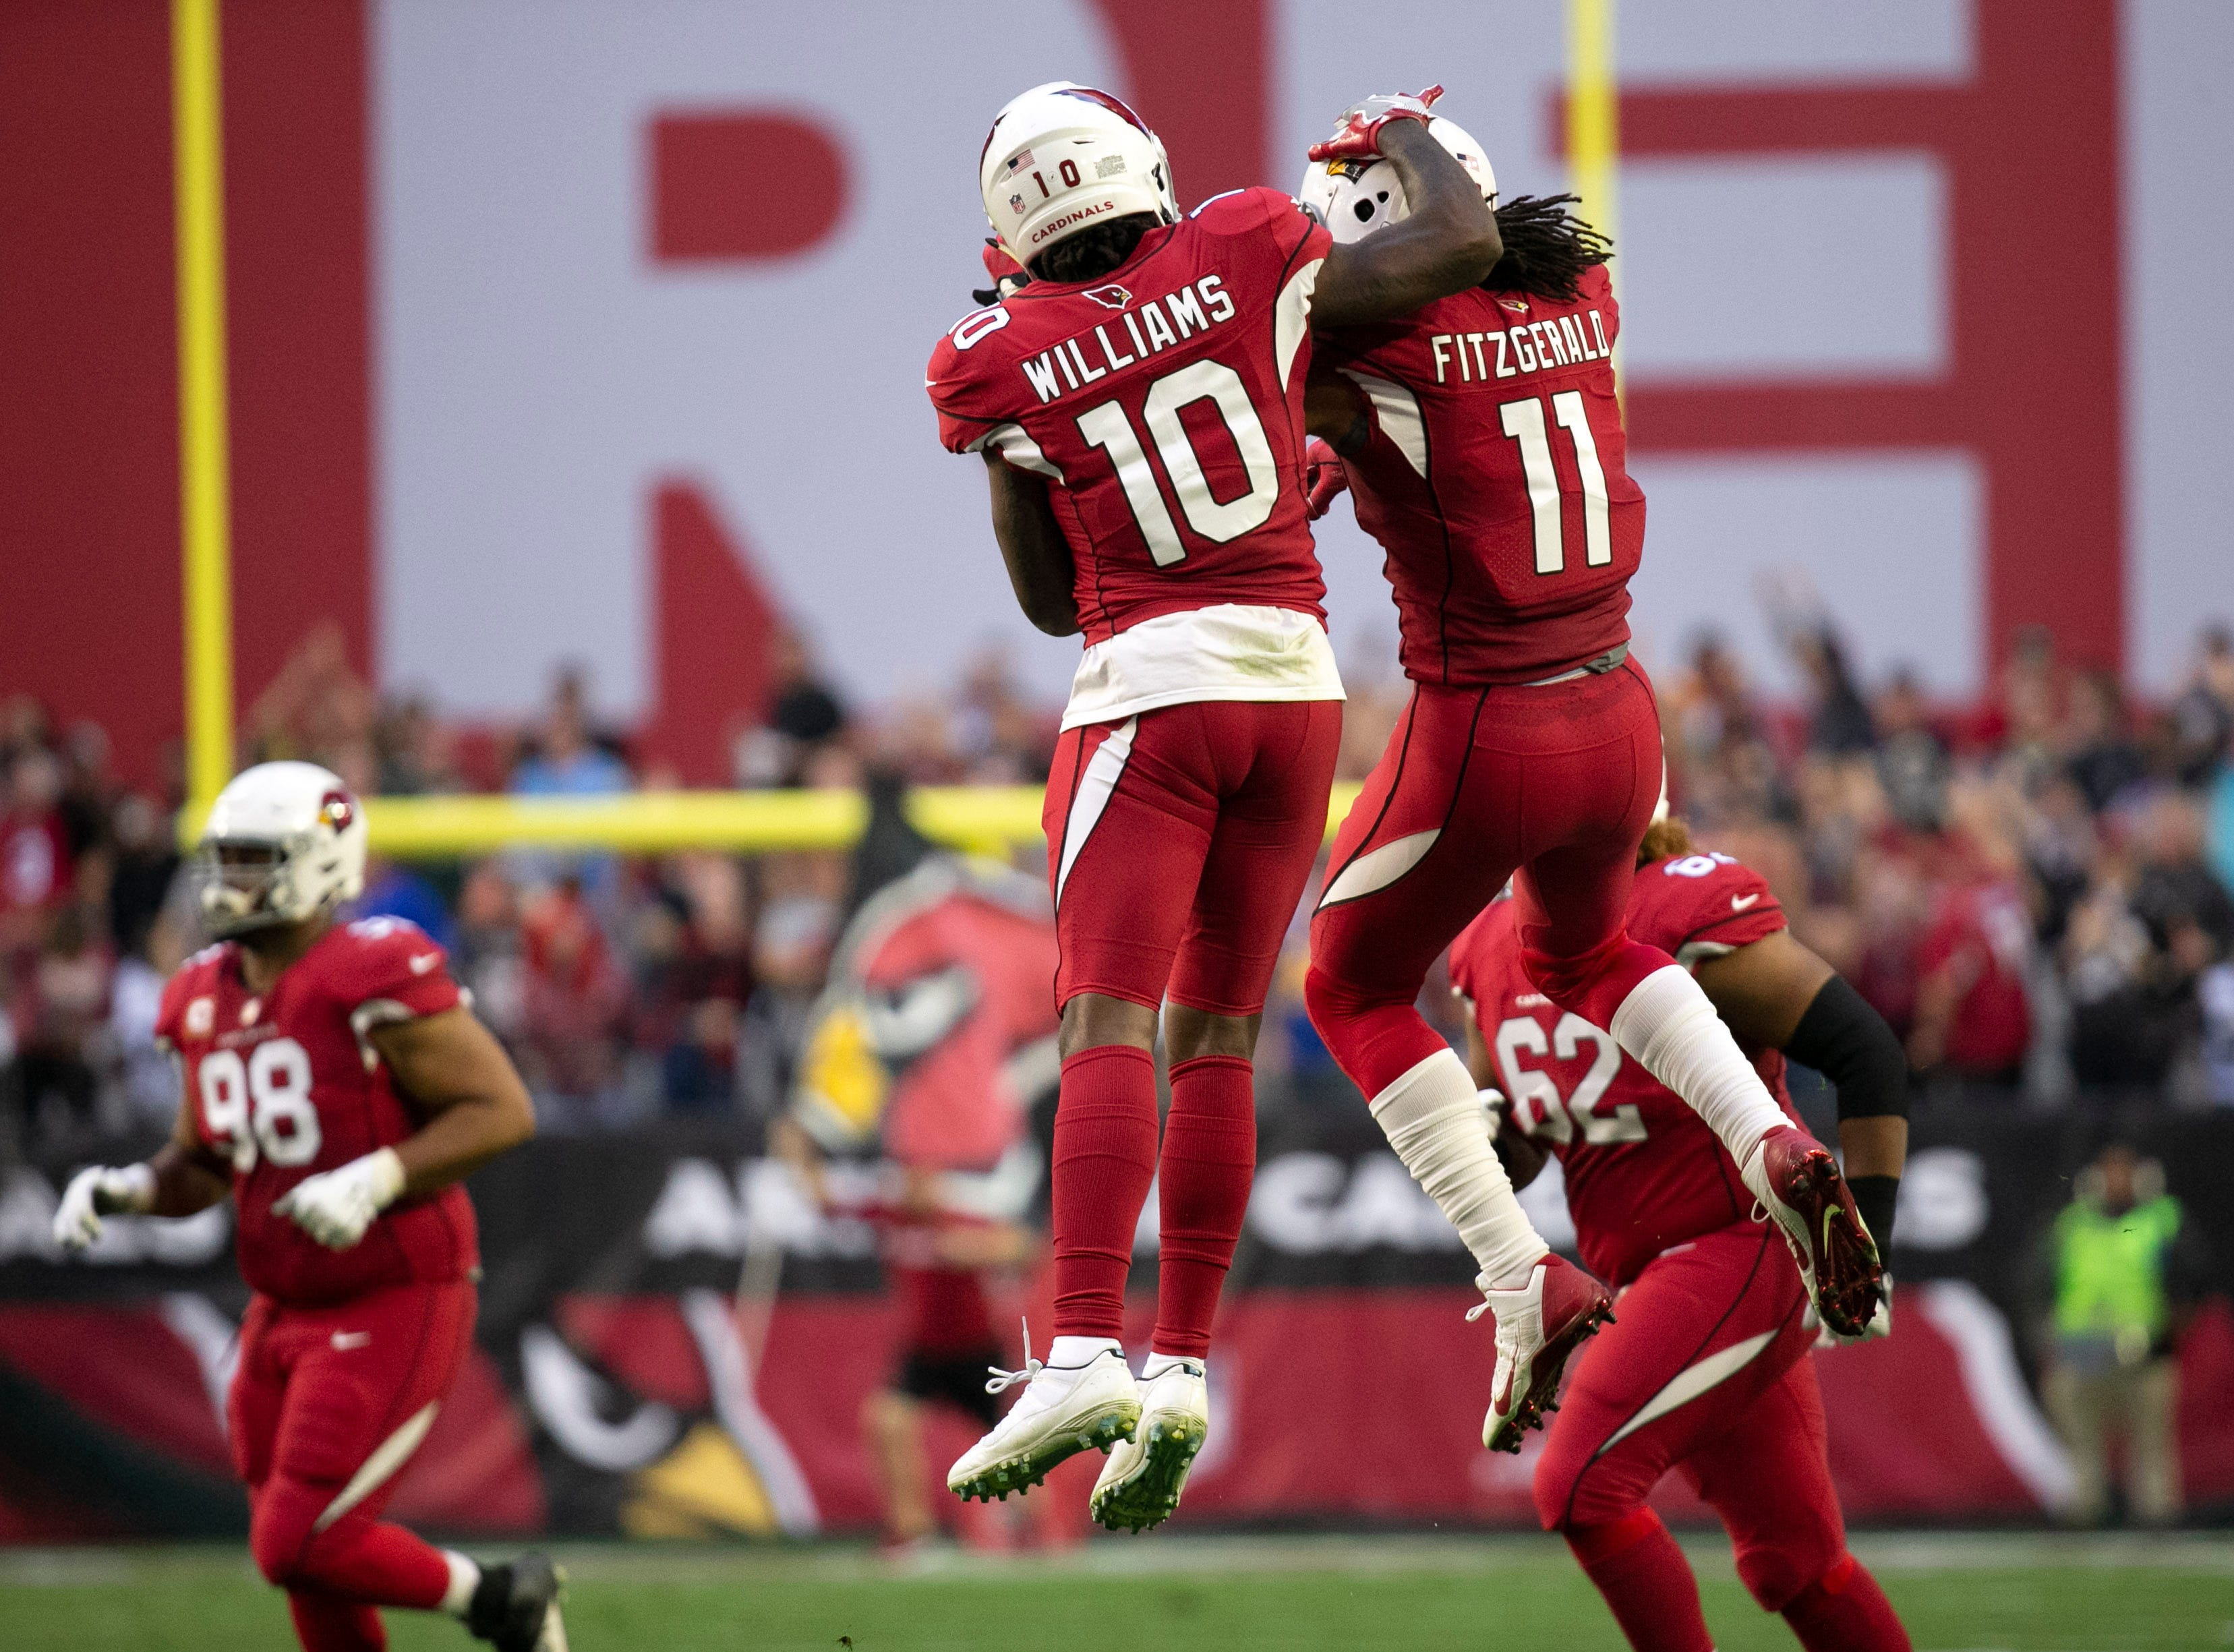 Cardinals wide receiver Larry Fitzgerald reacts with teammate Chad Williams after Fitzgerald threw a touchdown pass against the Rams during the second quarter of the NFL game at State Farm Stadium in Glendale on Sunday, December 23, 2018.